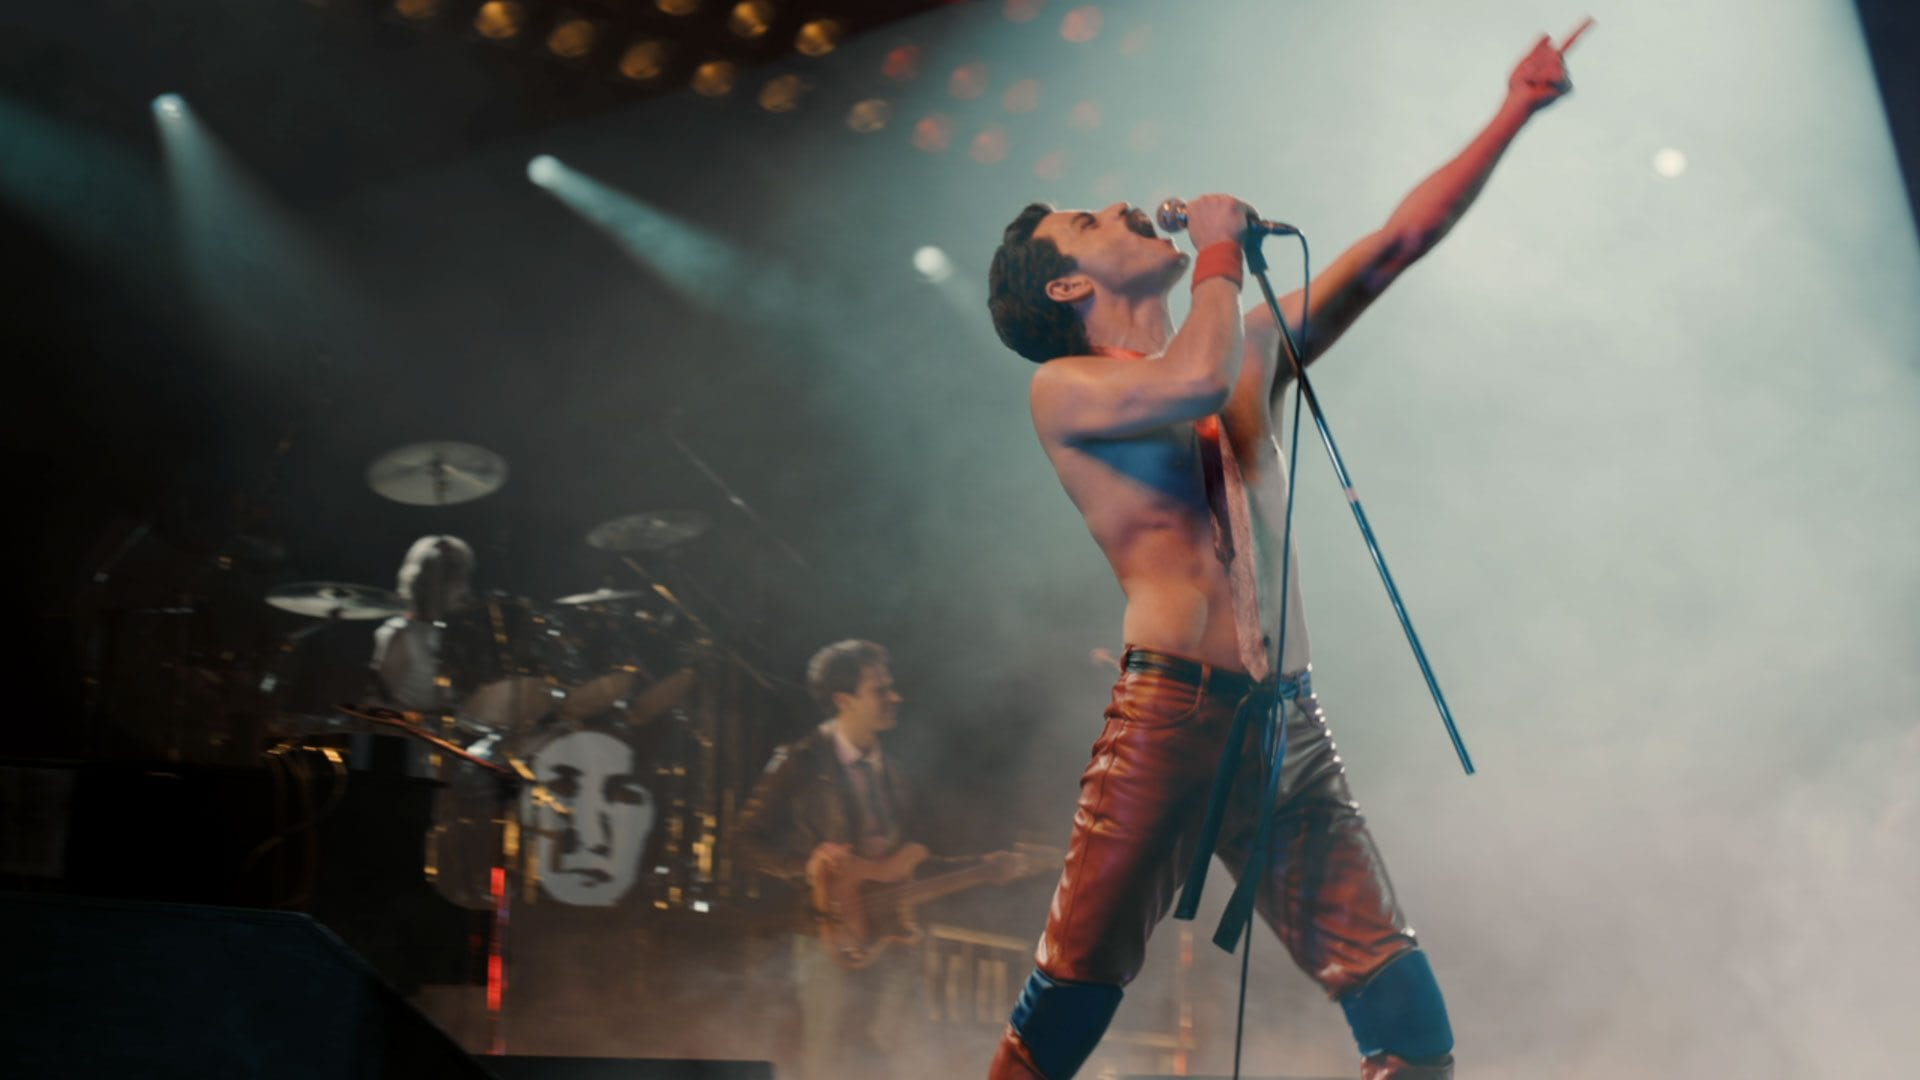 WATCH: Queen feature film, 'Bohemian Rhapsody,' drops poster, art, trailer